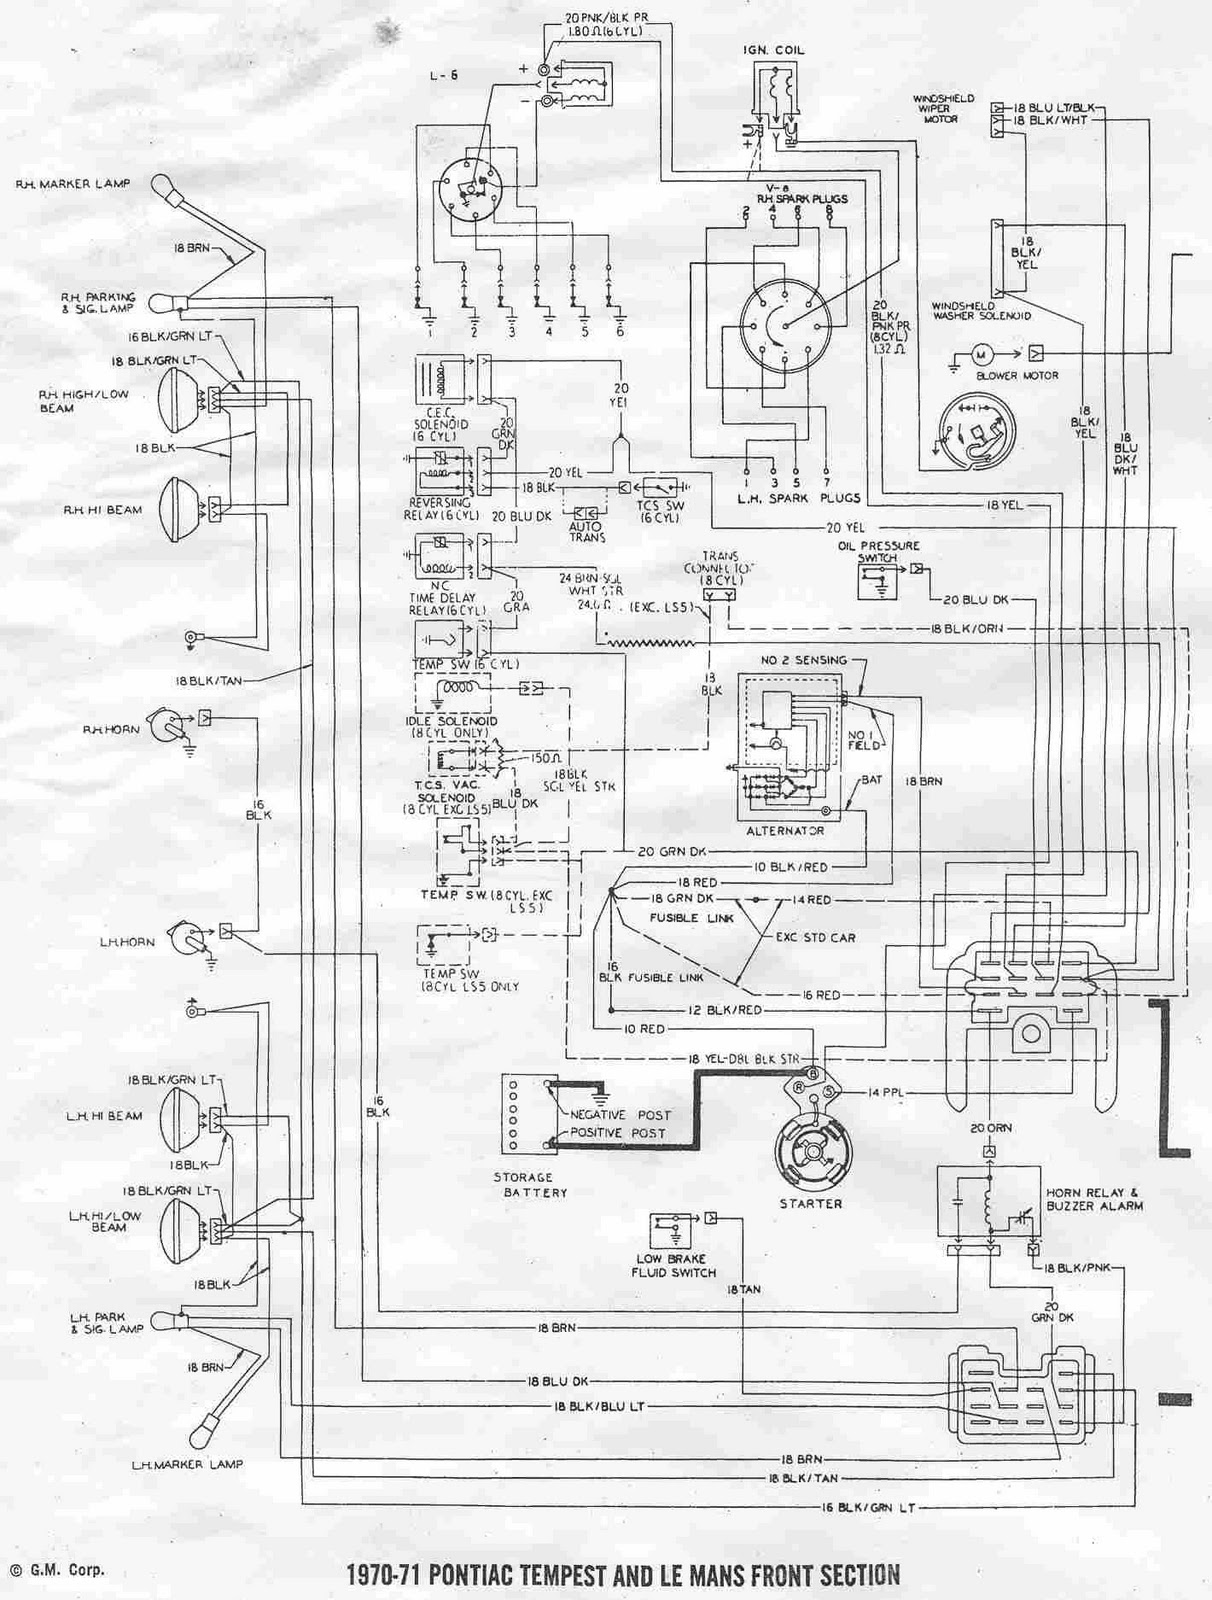 pontiac tempest and le mans 1970 1971 front section wiring diagram all about wiring diagrams. Black Bedroom Furniture Sets. Home Design Ideas